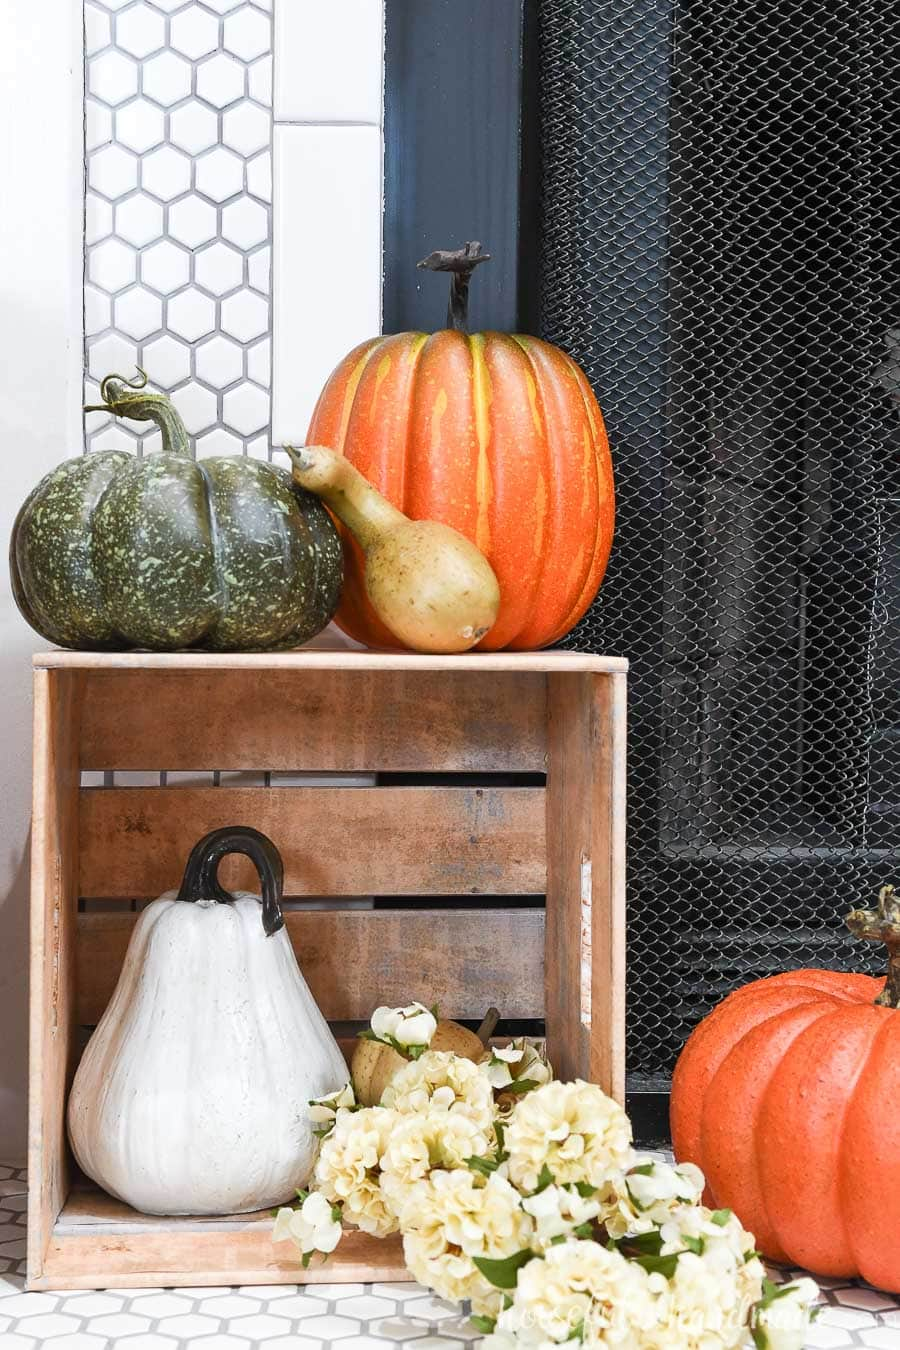 Paper crate on it's side displaying pumpkins and gourds in front of a fireplace.